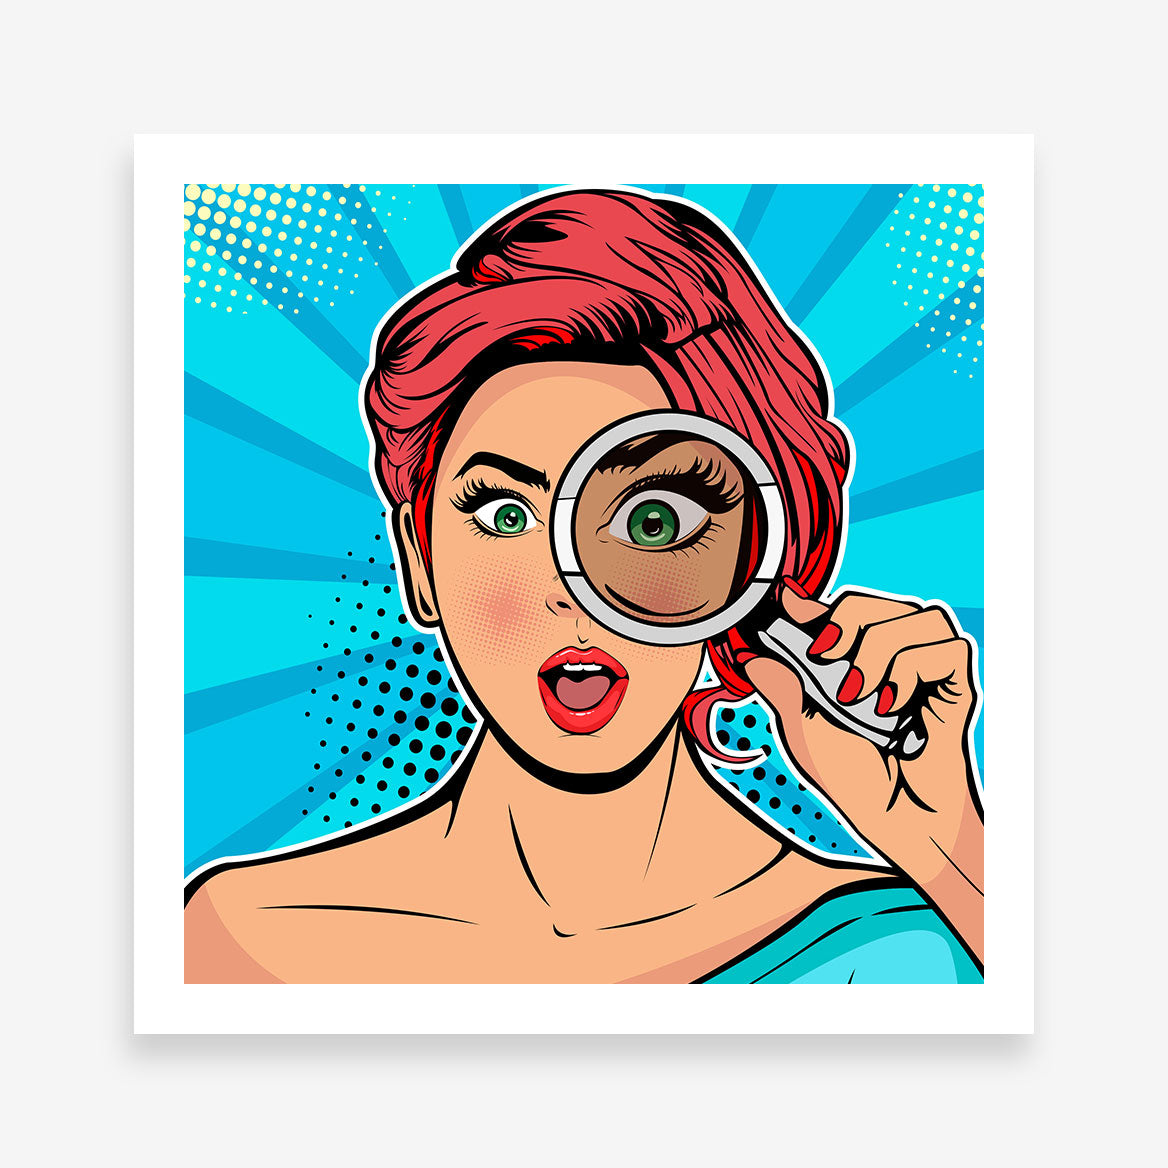 Square pop art poster print with a wowed girl with magnifying glass, on a blue background